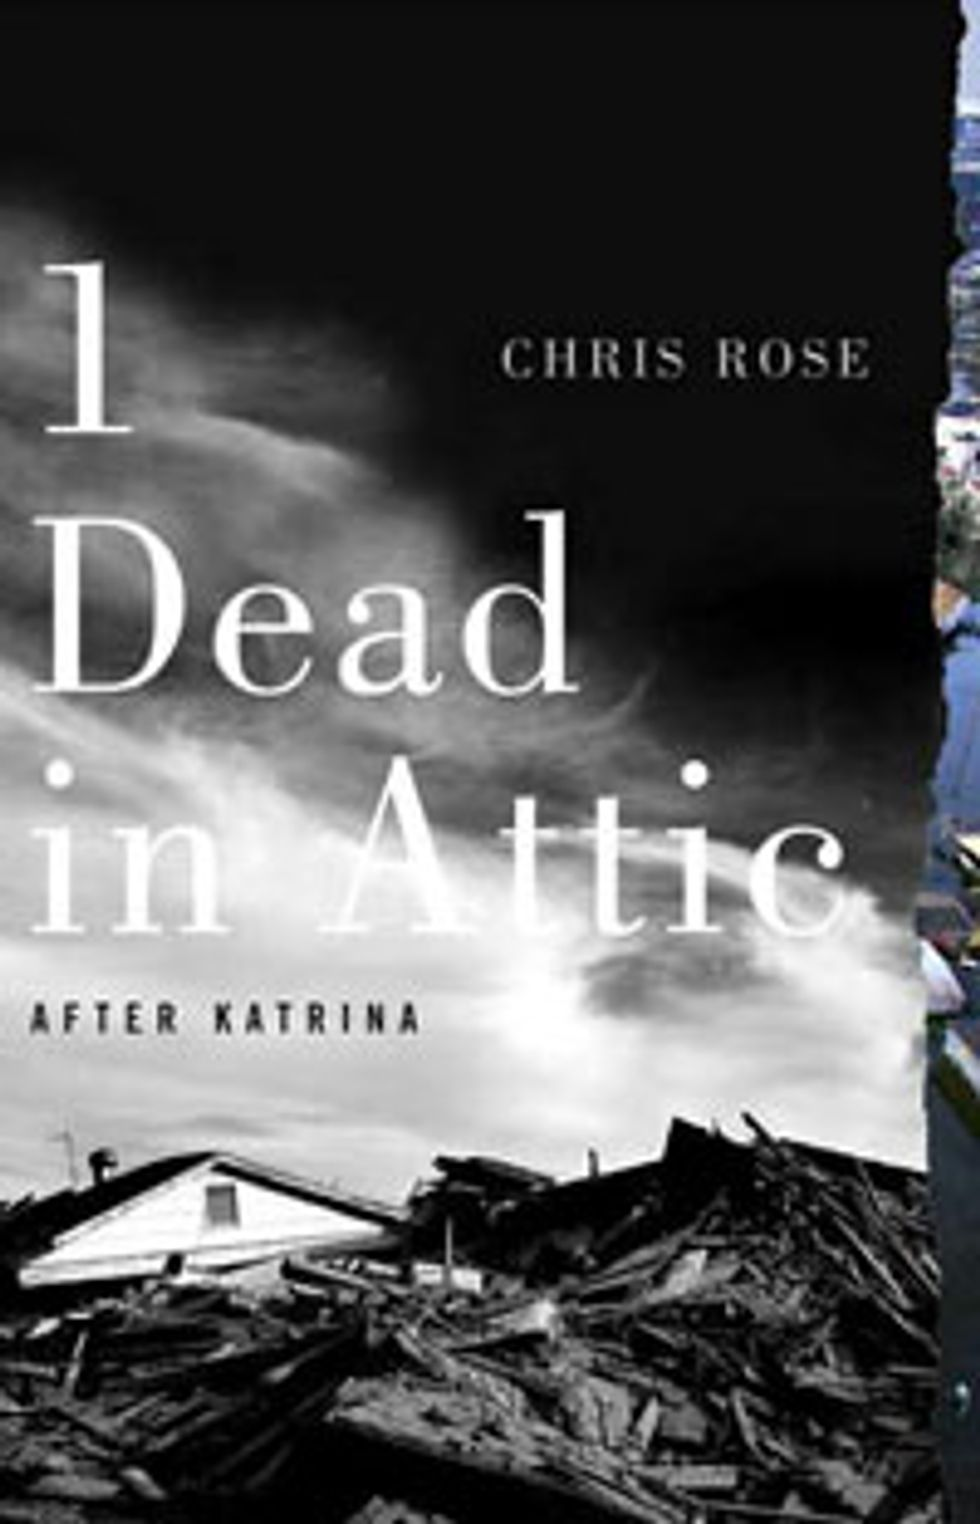 1 Dead In Attic After Katrina By Chris Rose Popmatters